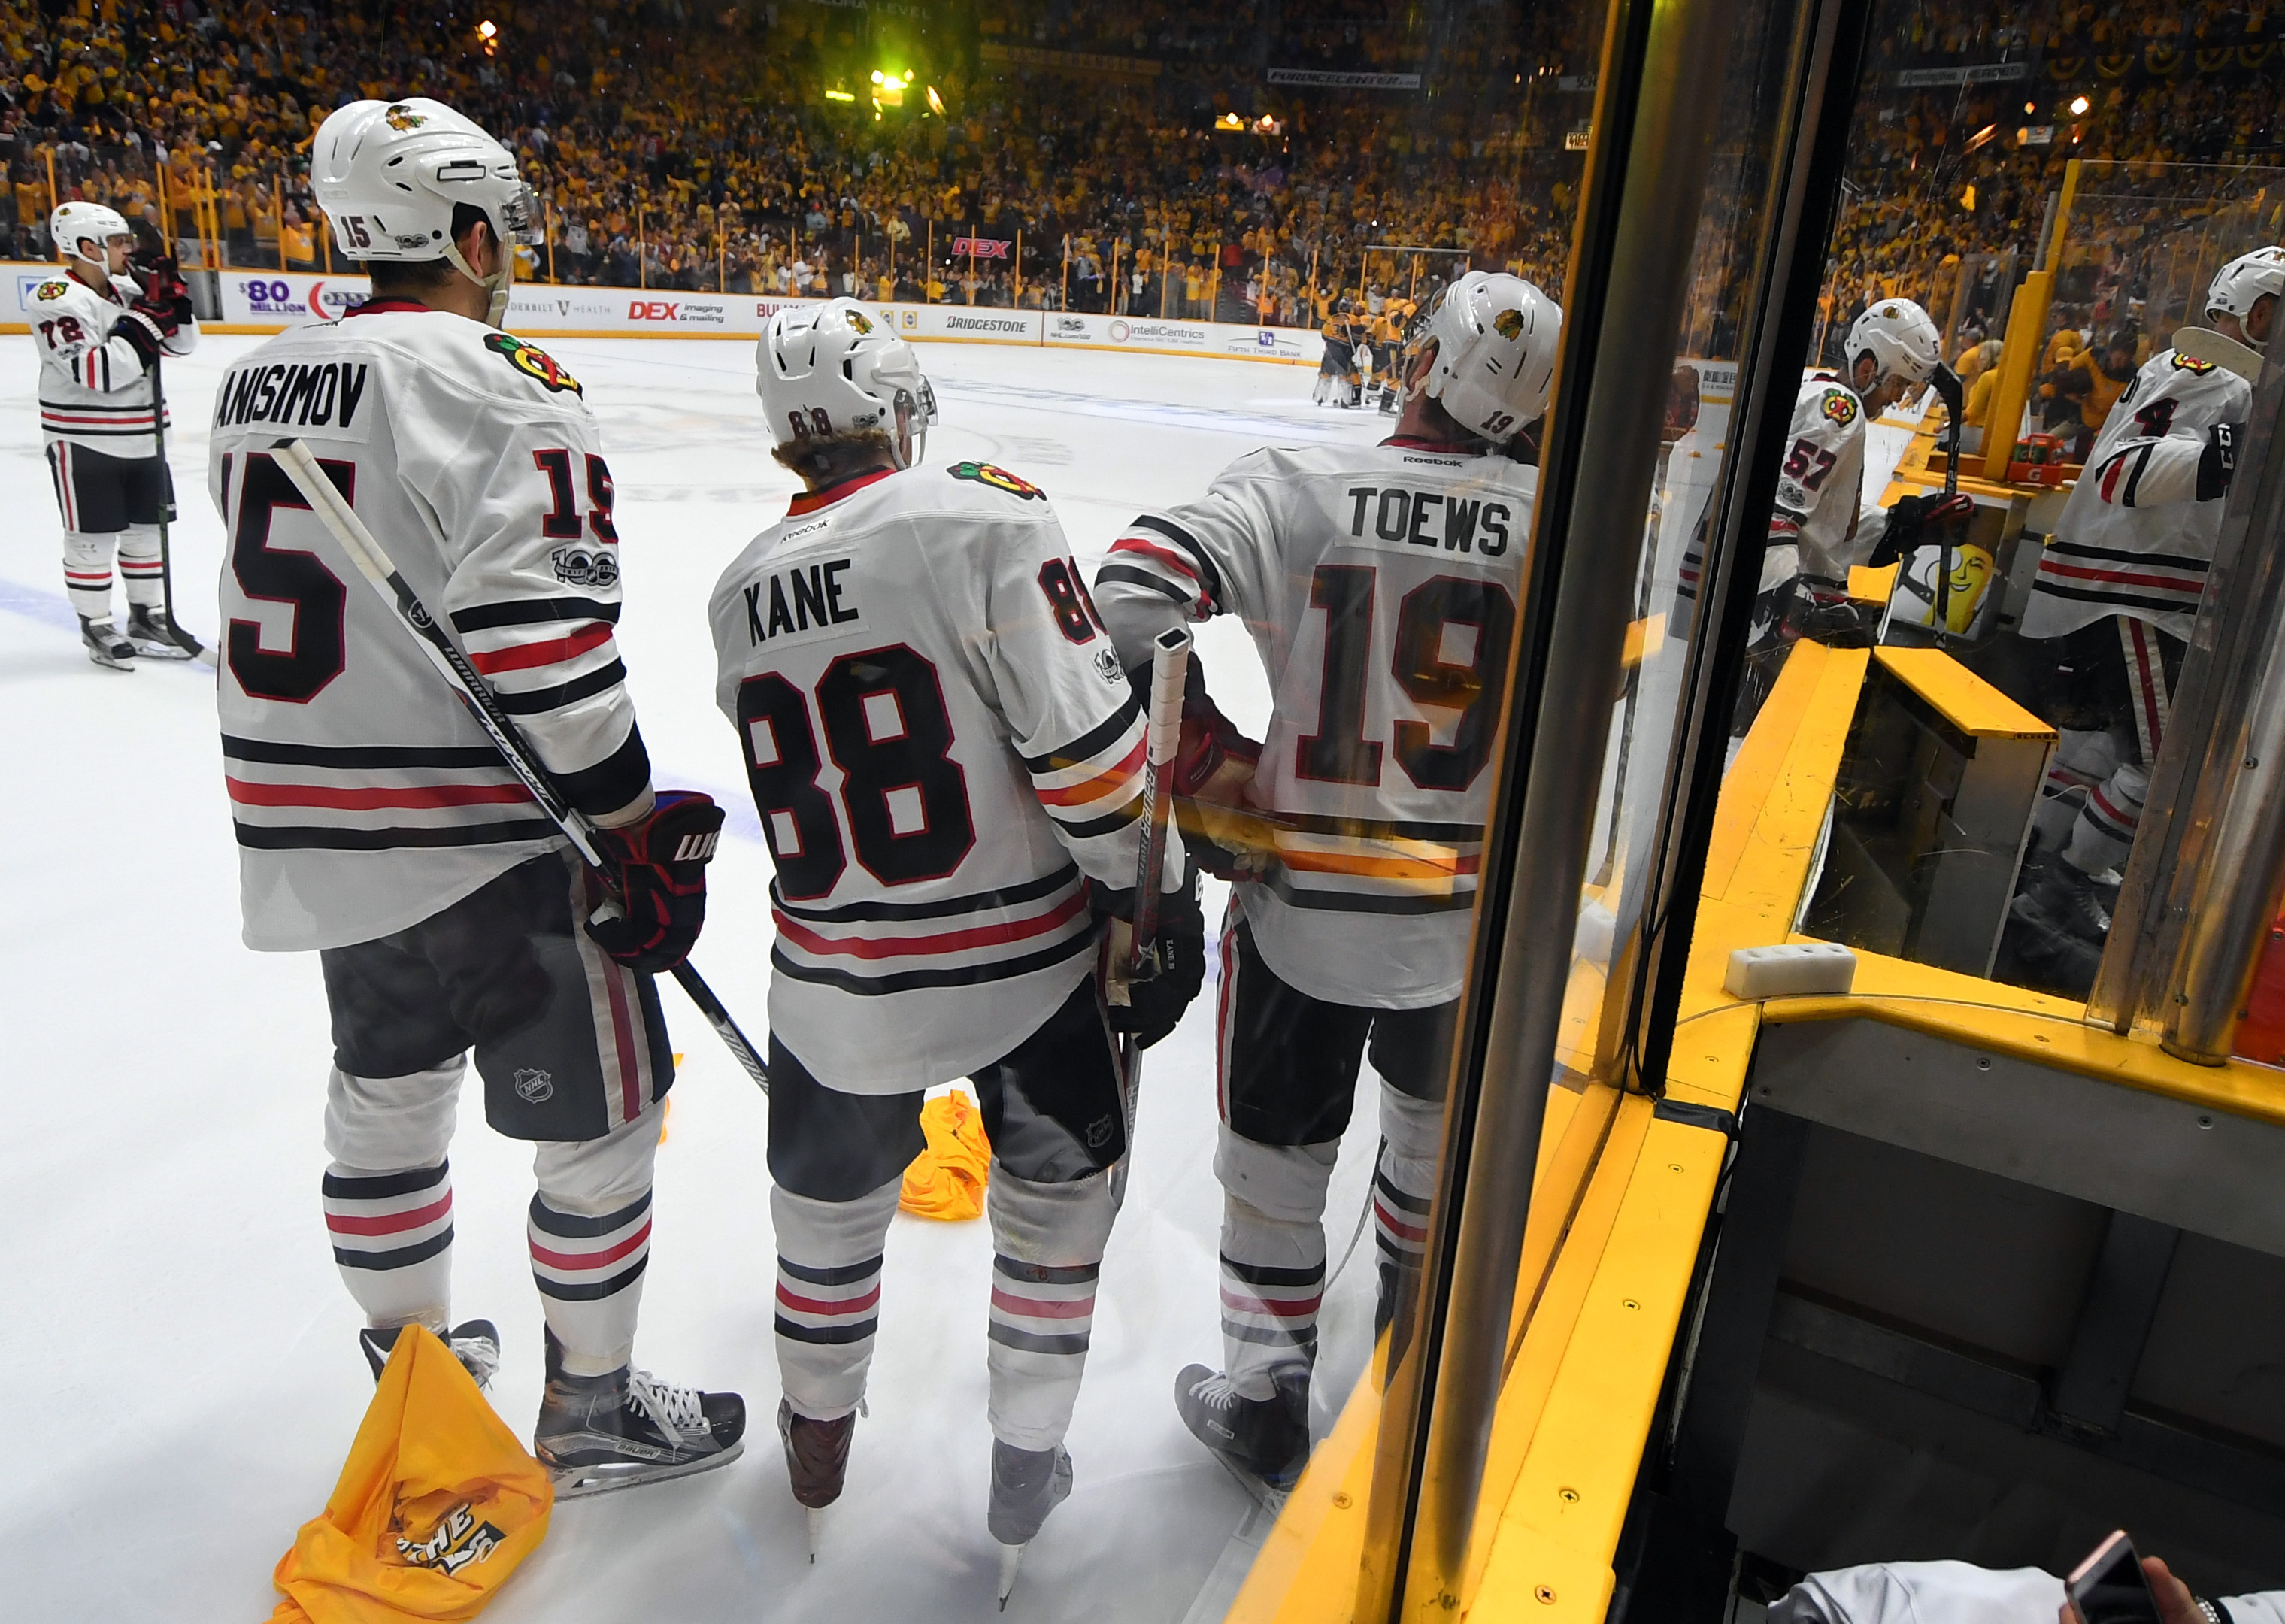 10018052-nhl-stanley-cup-playoffs-chicago-blackhawks-at-nashville-predators